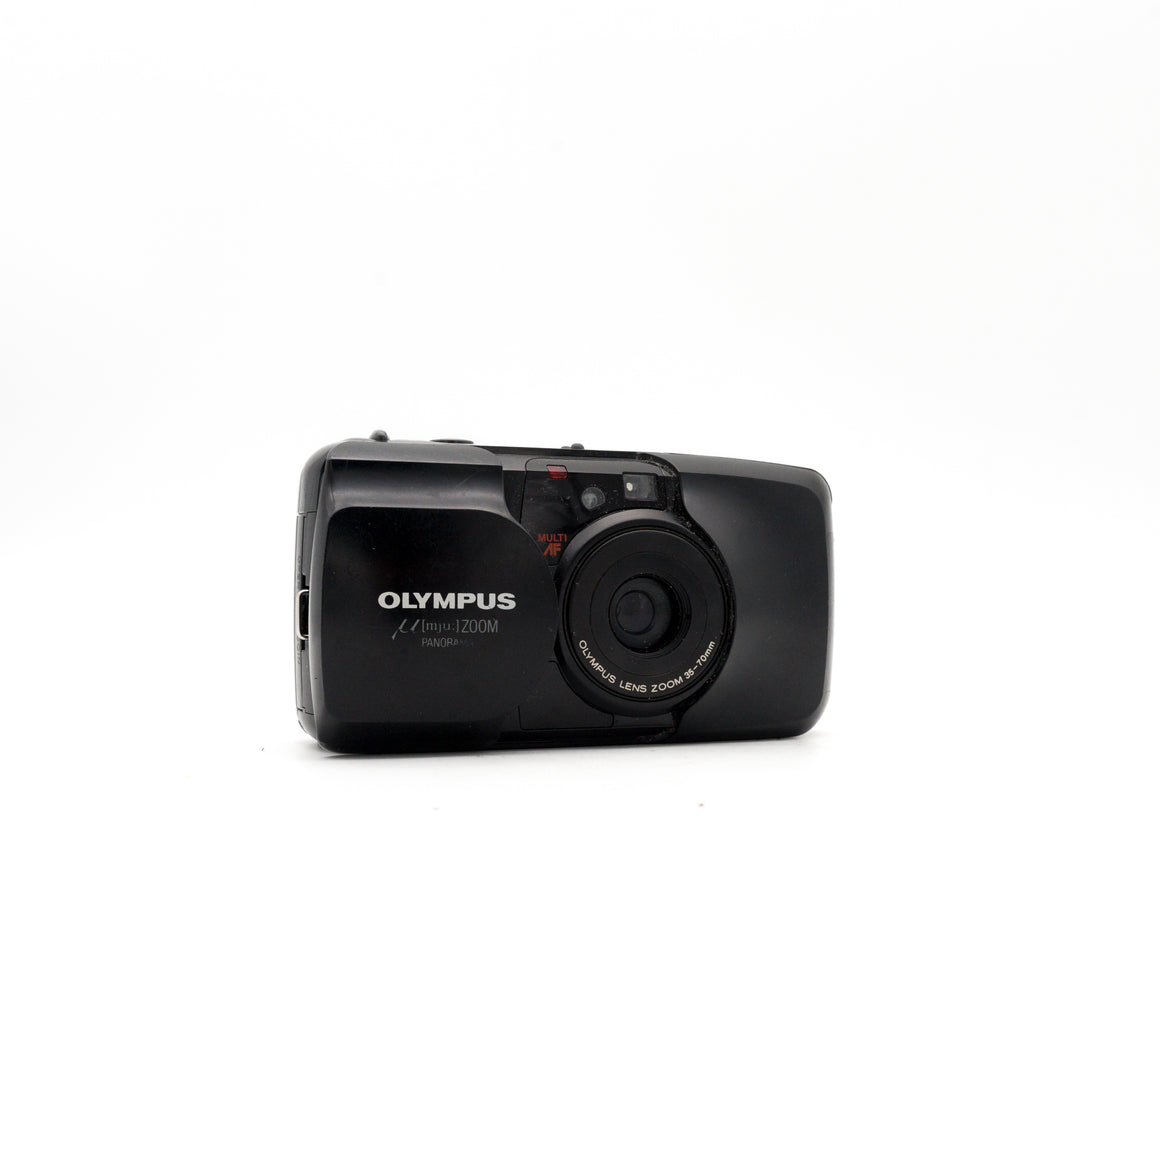 Olympus Mju Zoom 70 PANORAMA Point & Shoot Camera with 38mm-70mm Zoom Lens